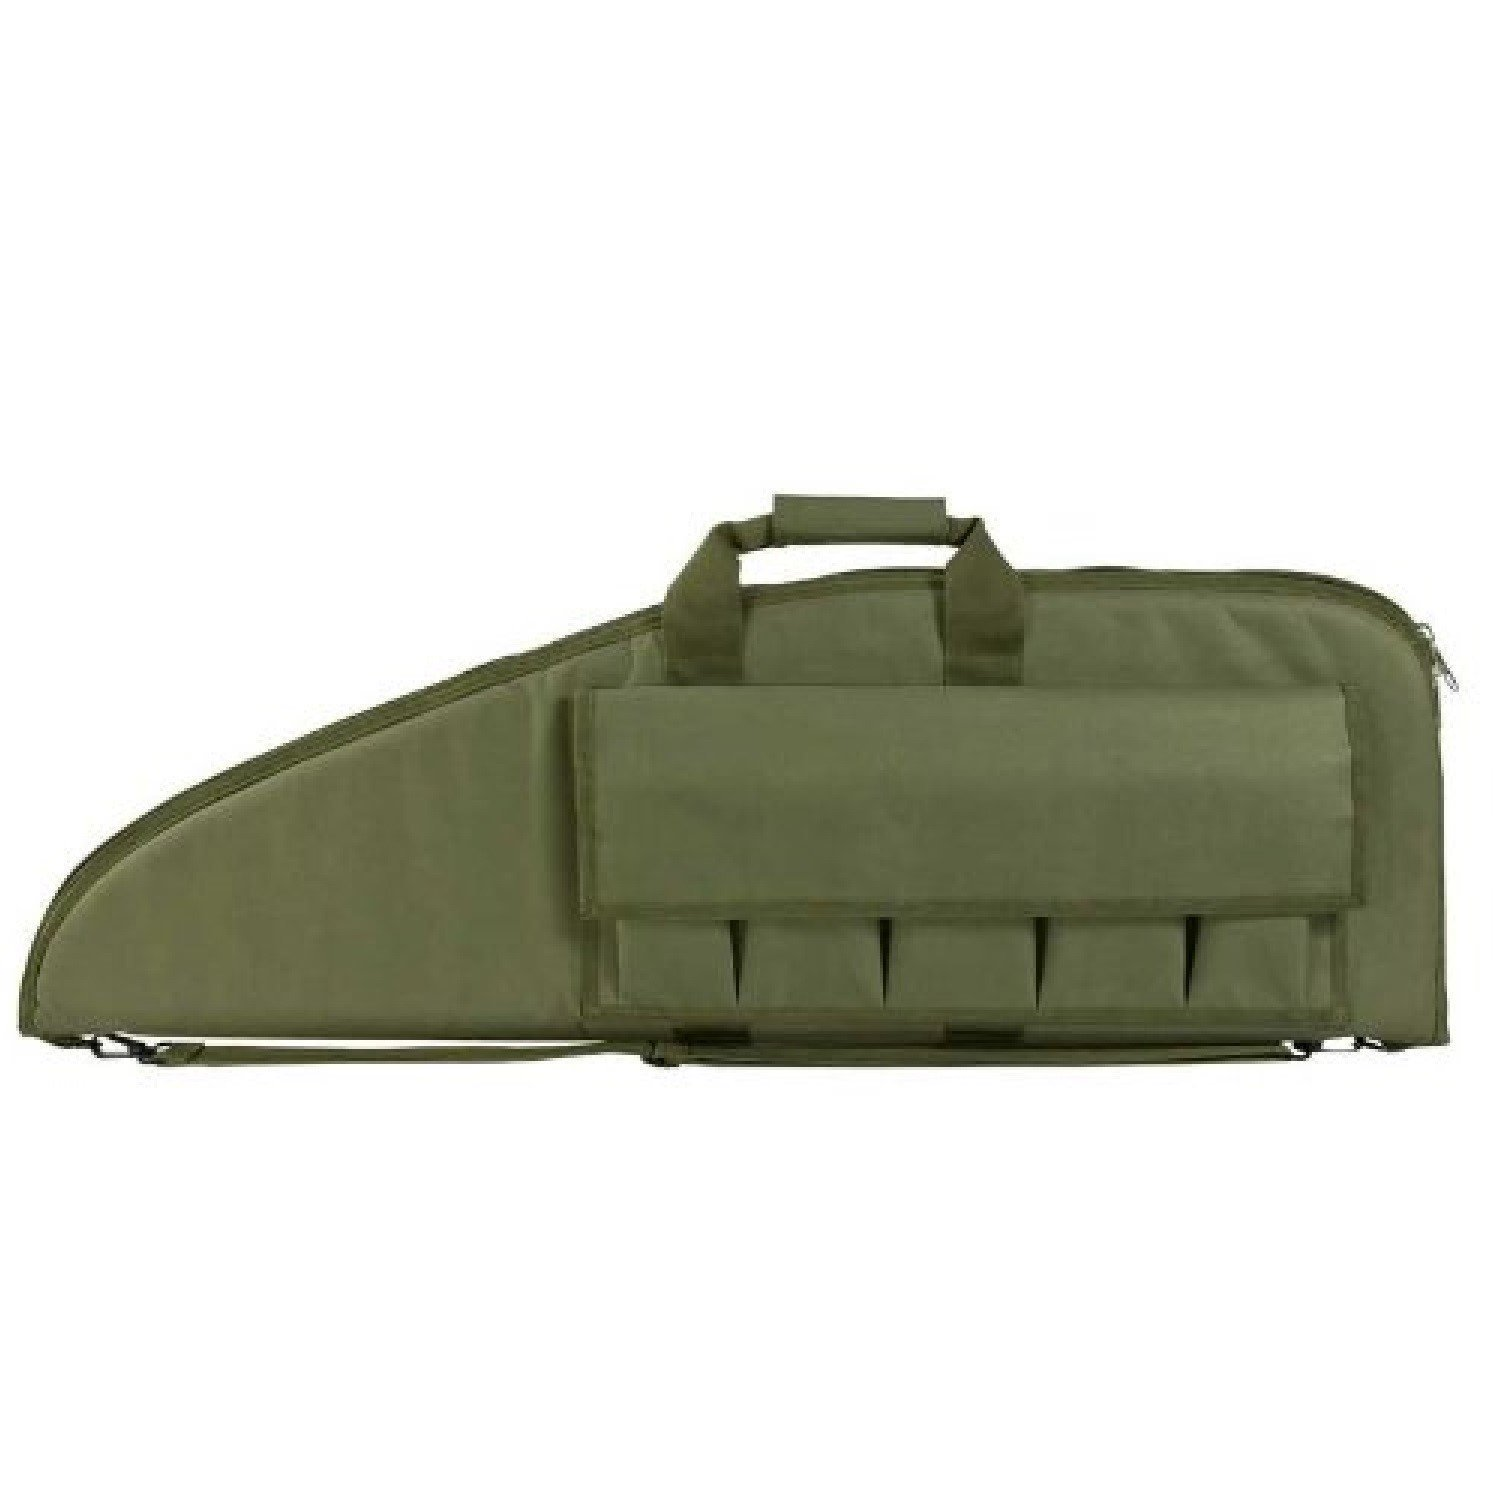 image of NcStar CVG2907 Series Rifle Case